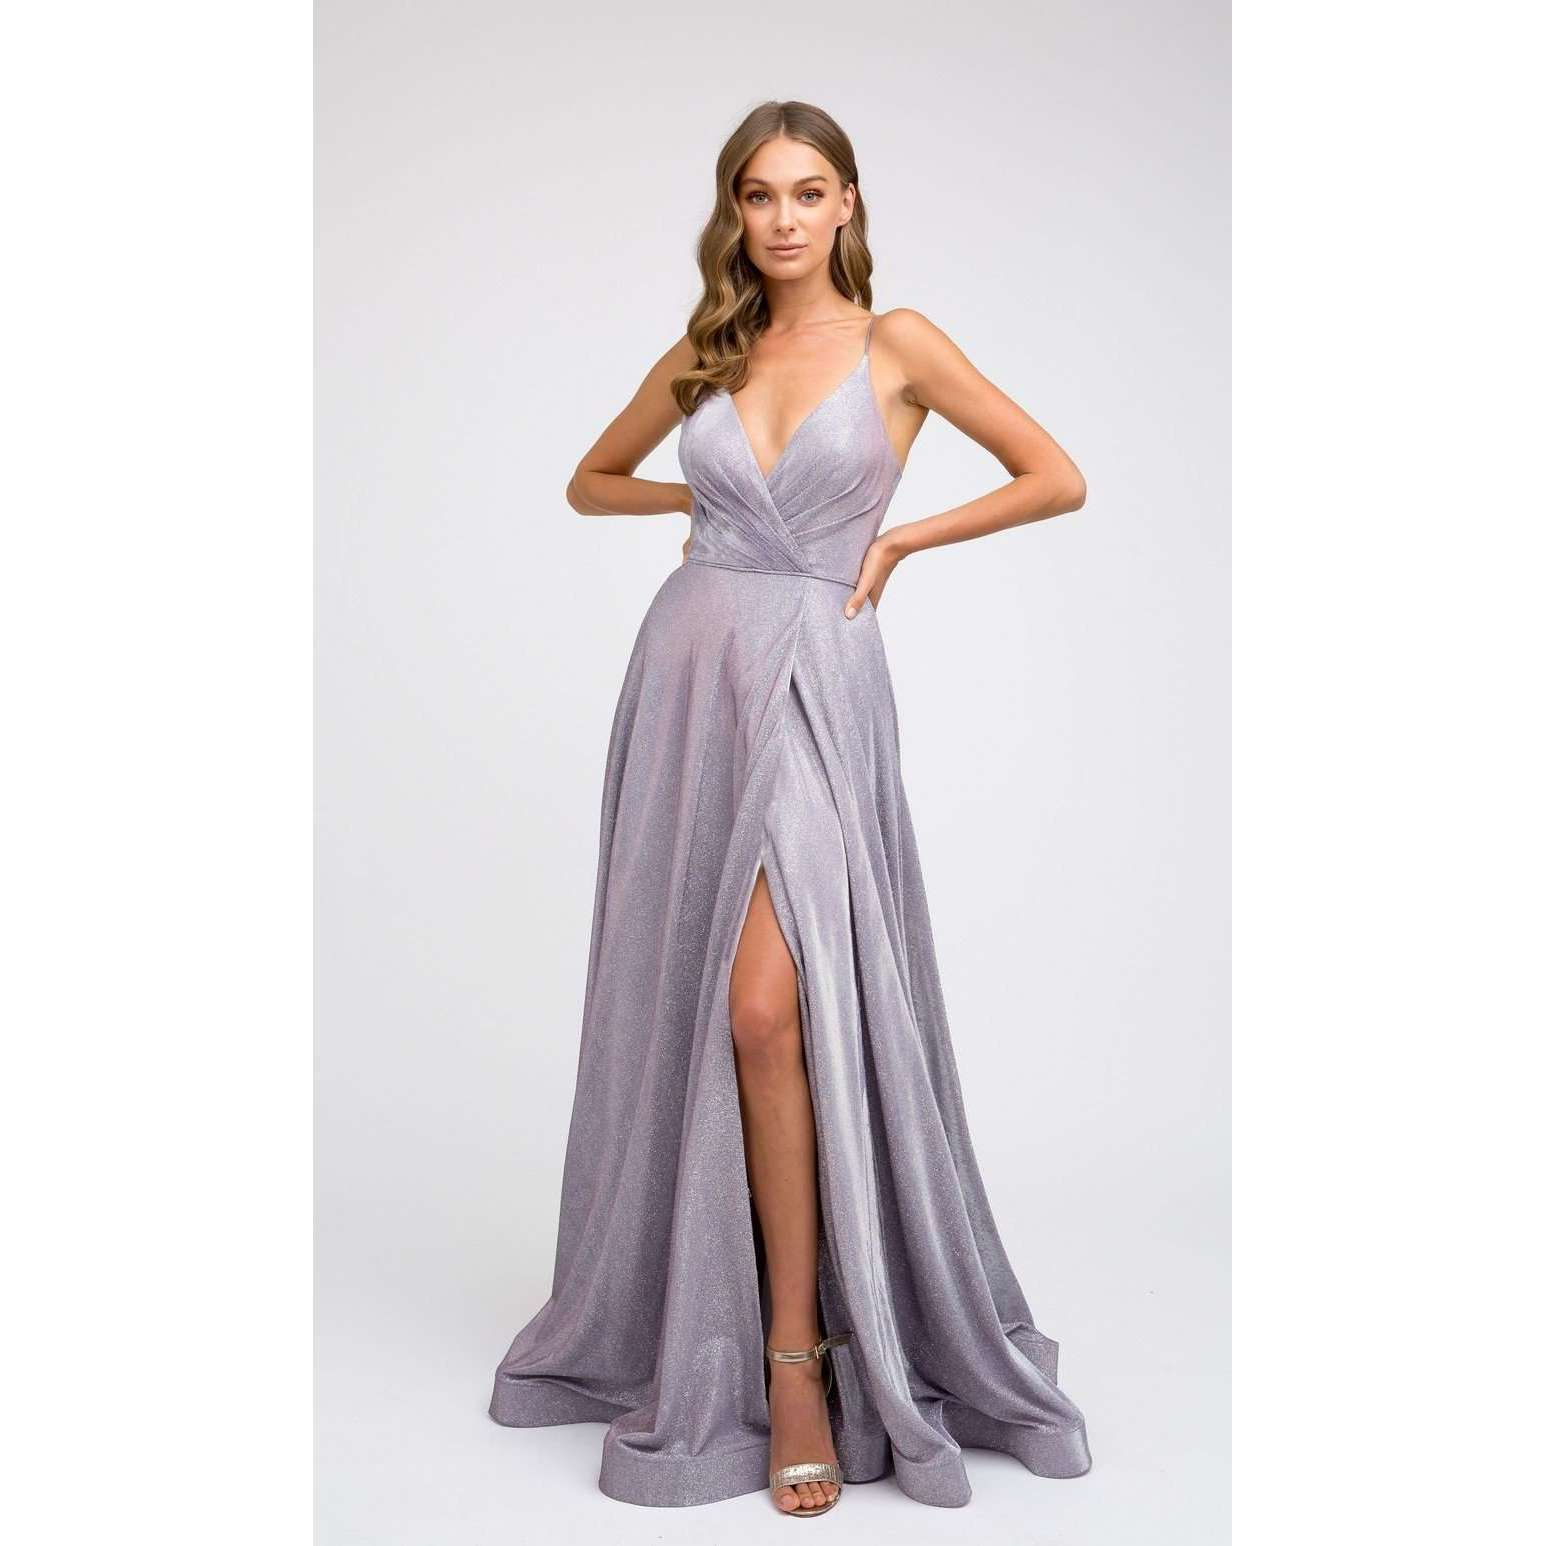 Ruched V-Neck Formal Prom Dress 246 - Julietdresses